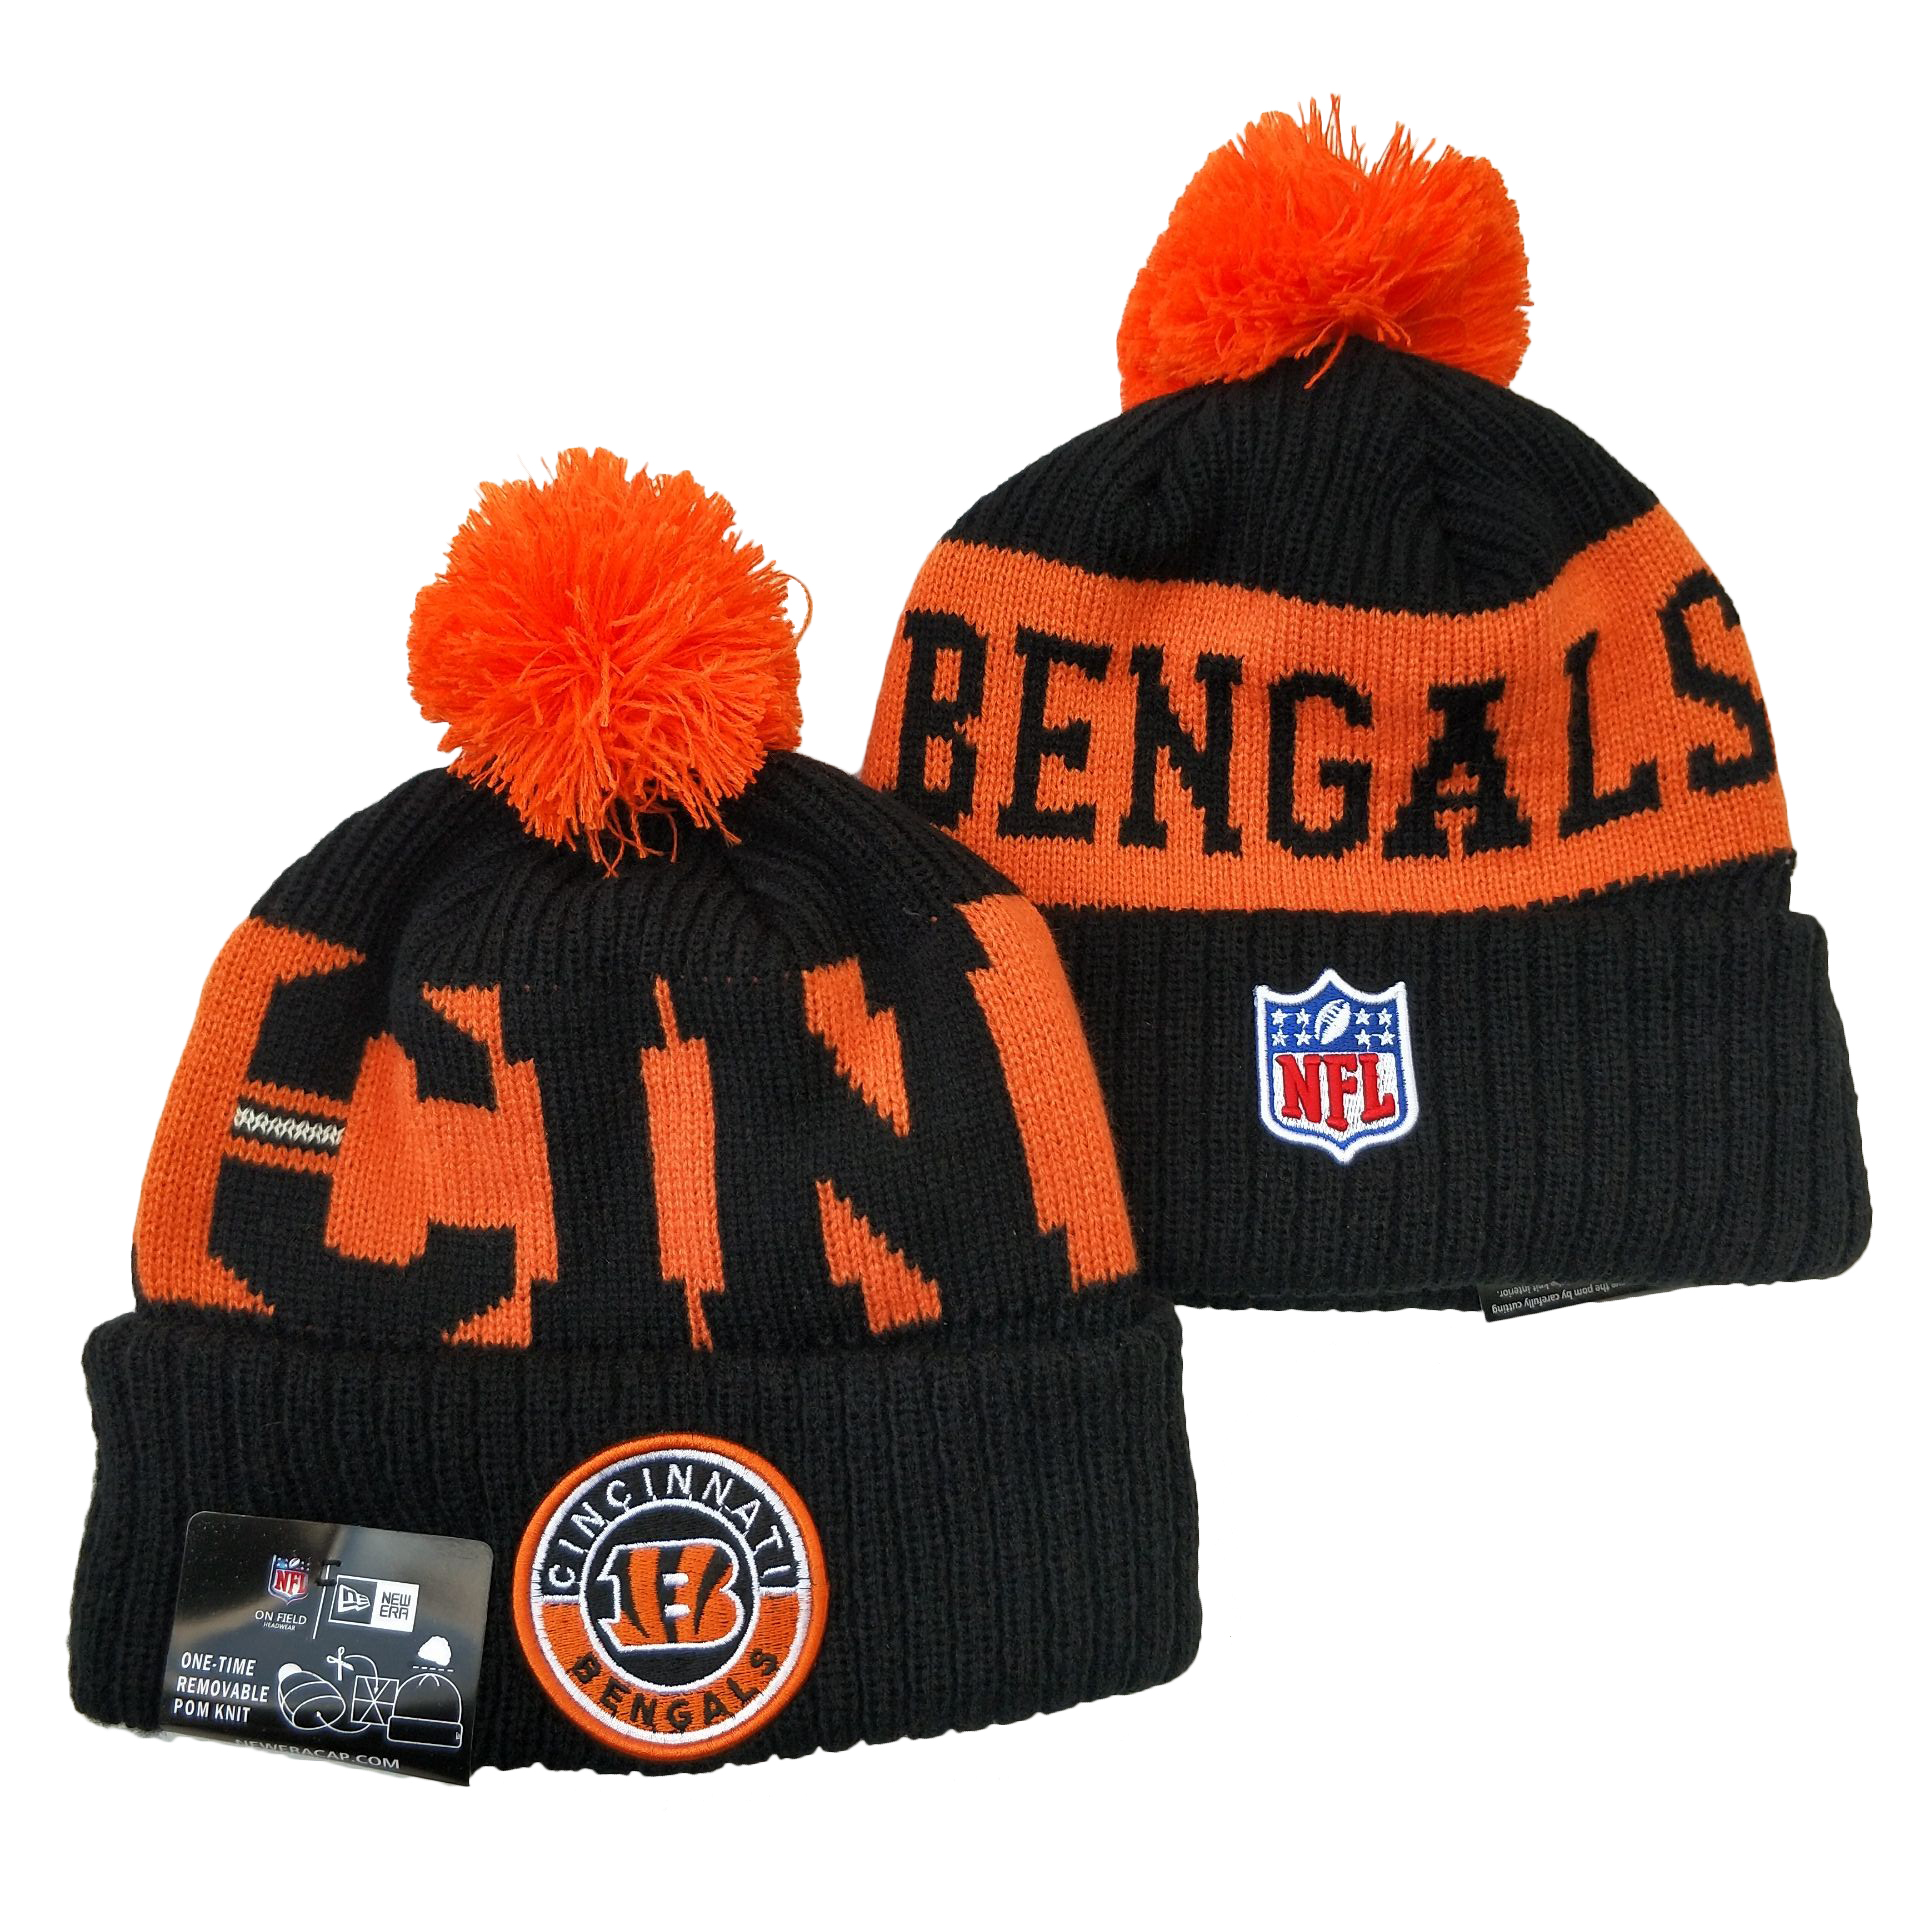 Bengals Team Logo Black Orange 2020 NFL Sideline Pom Cuffed Knit Hat YD